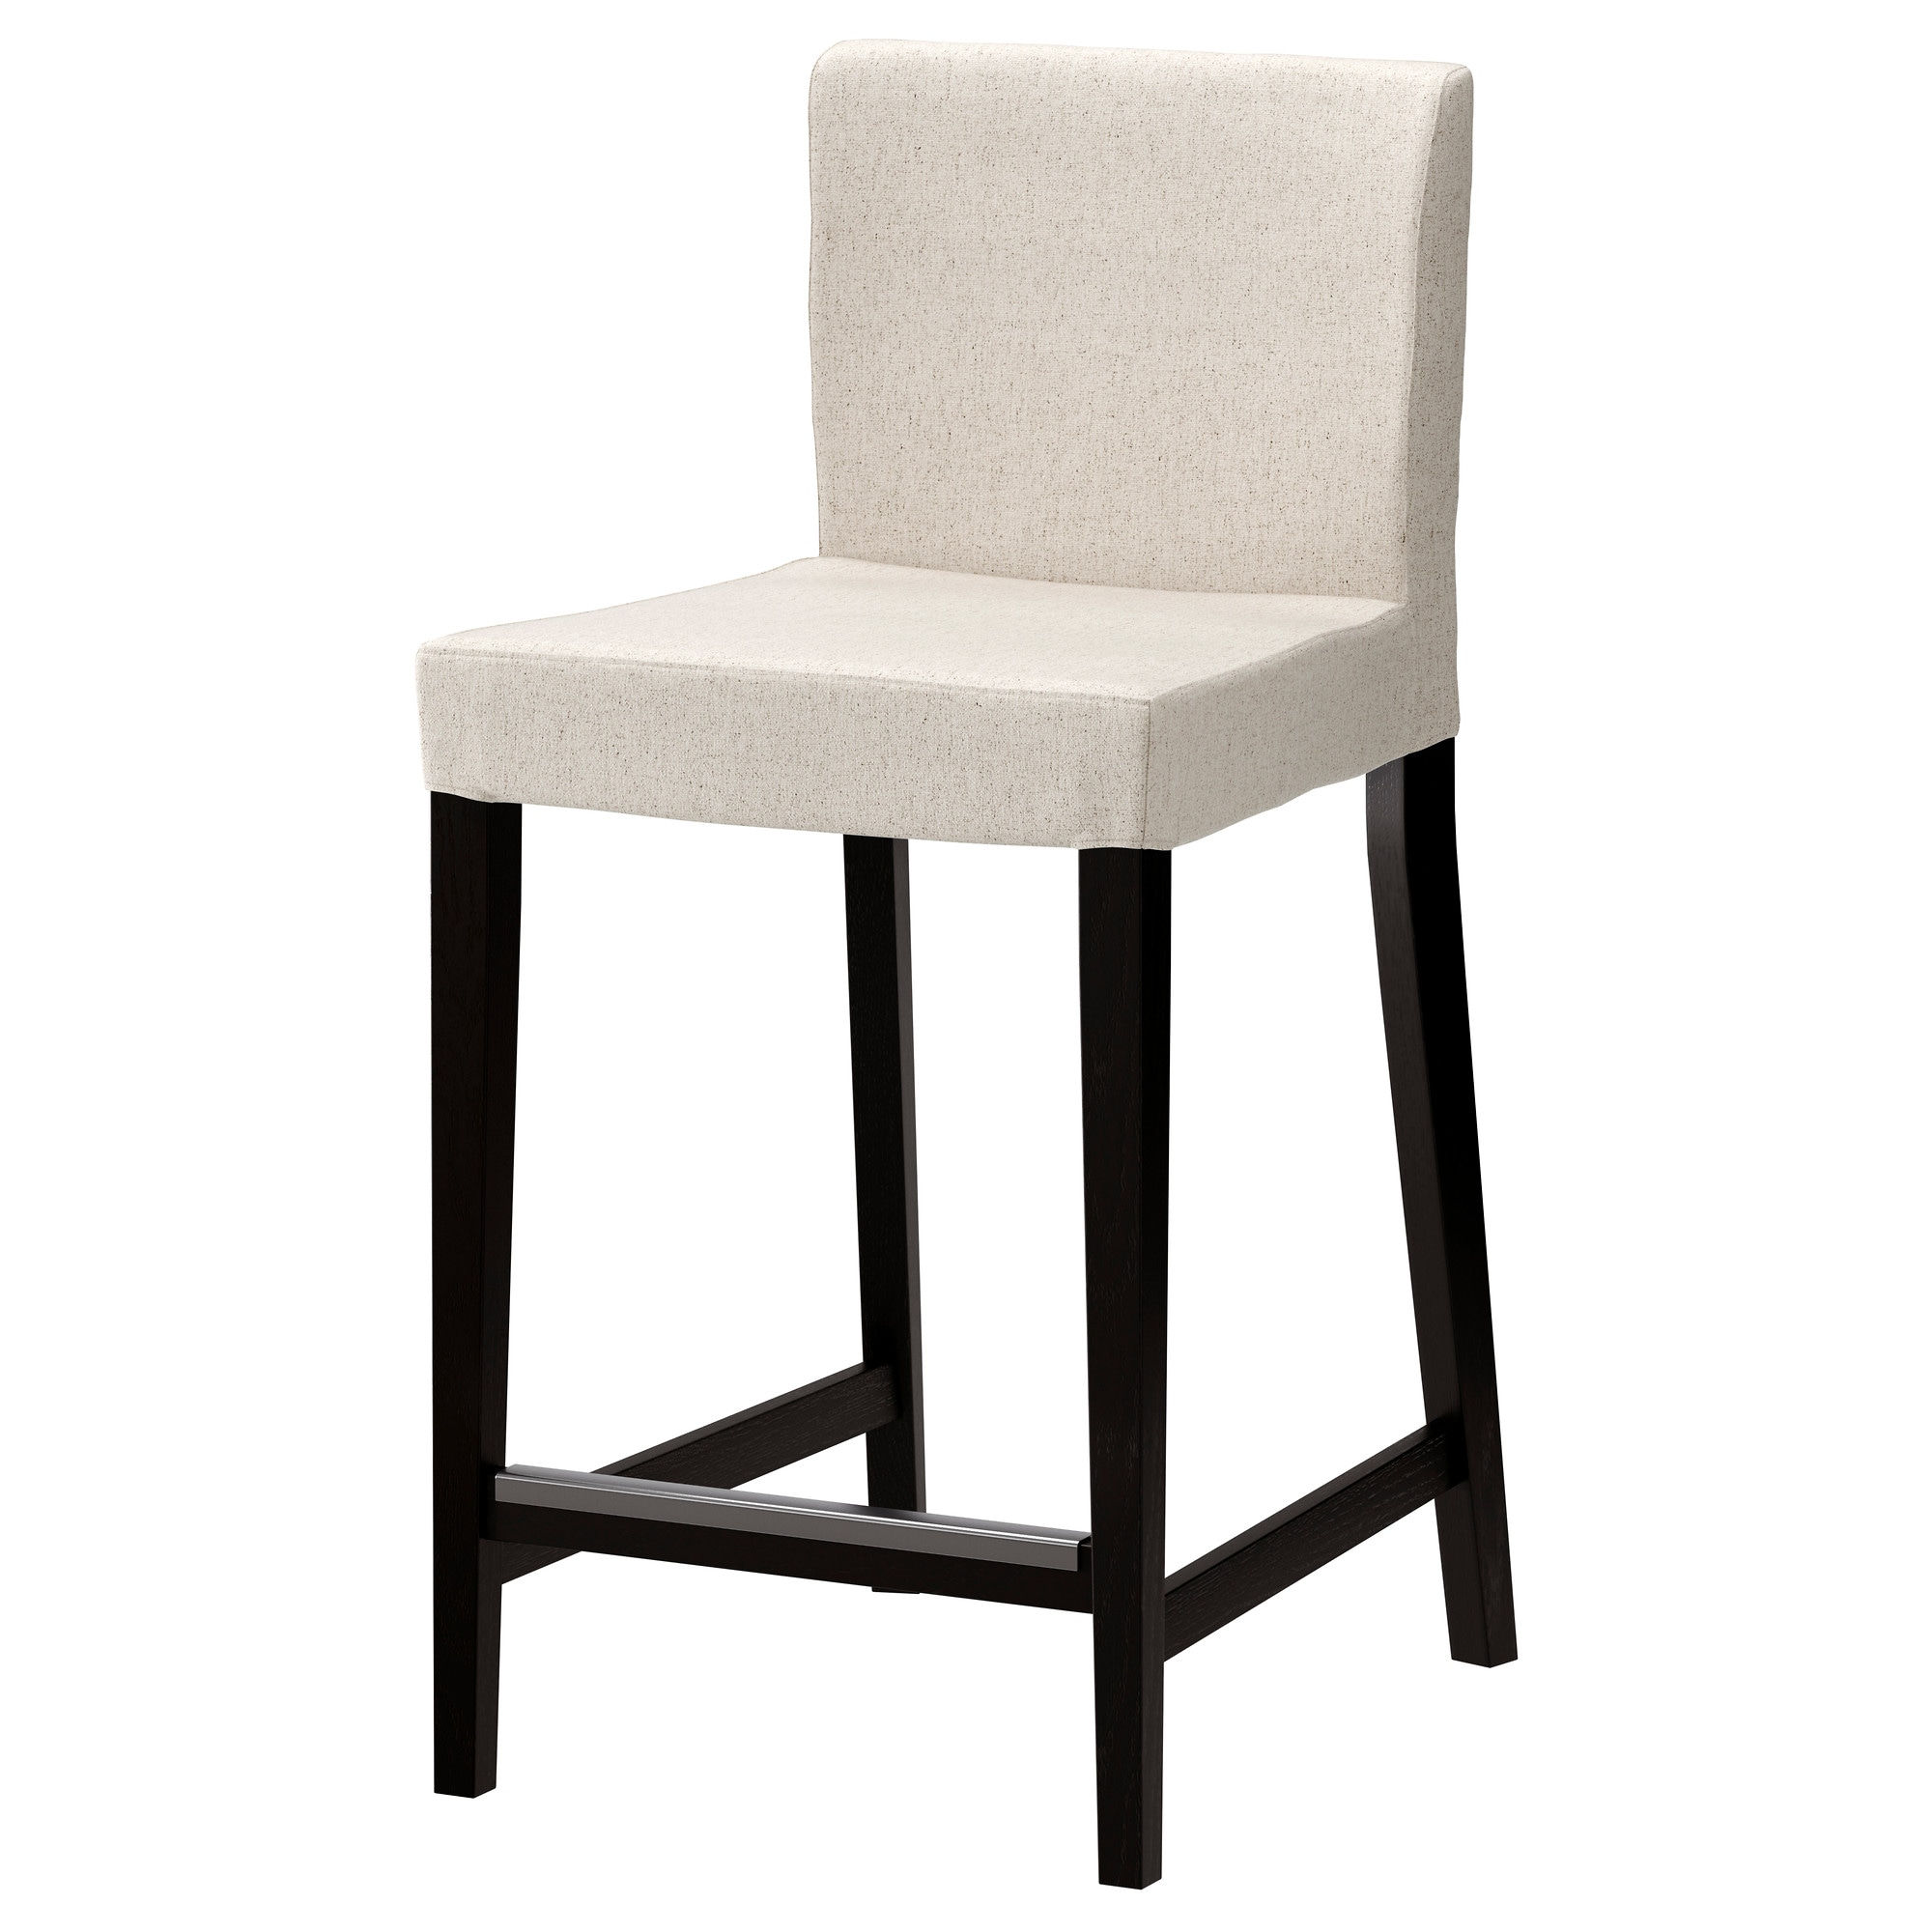 HENRIKSDAL bar stool with backrest brown-black Linneryd natural Tested for 220  sc 1 st  Ikea & Bar tables u0026 chairs - Bar tables u0026 Bar stools - IKEA islam-shia.org